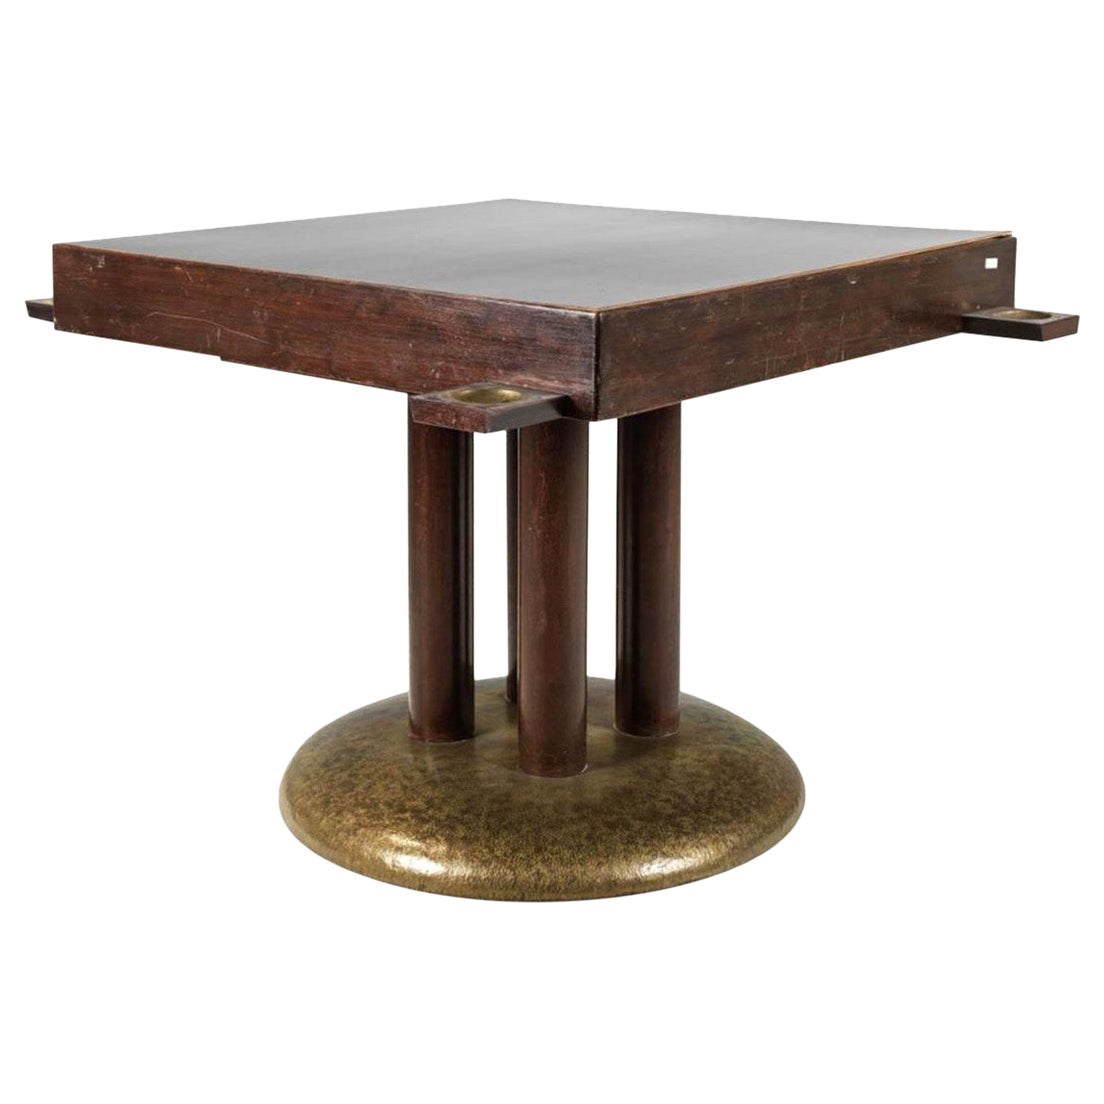 Original Gambling Table in the Style of Adolf Loos 1910 with Brass Chip-Bowls